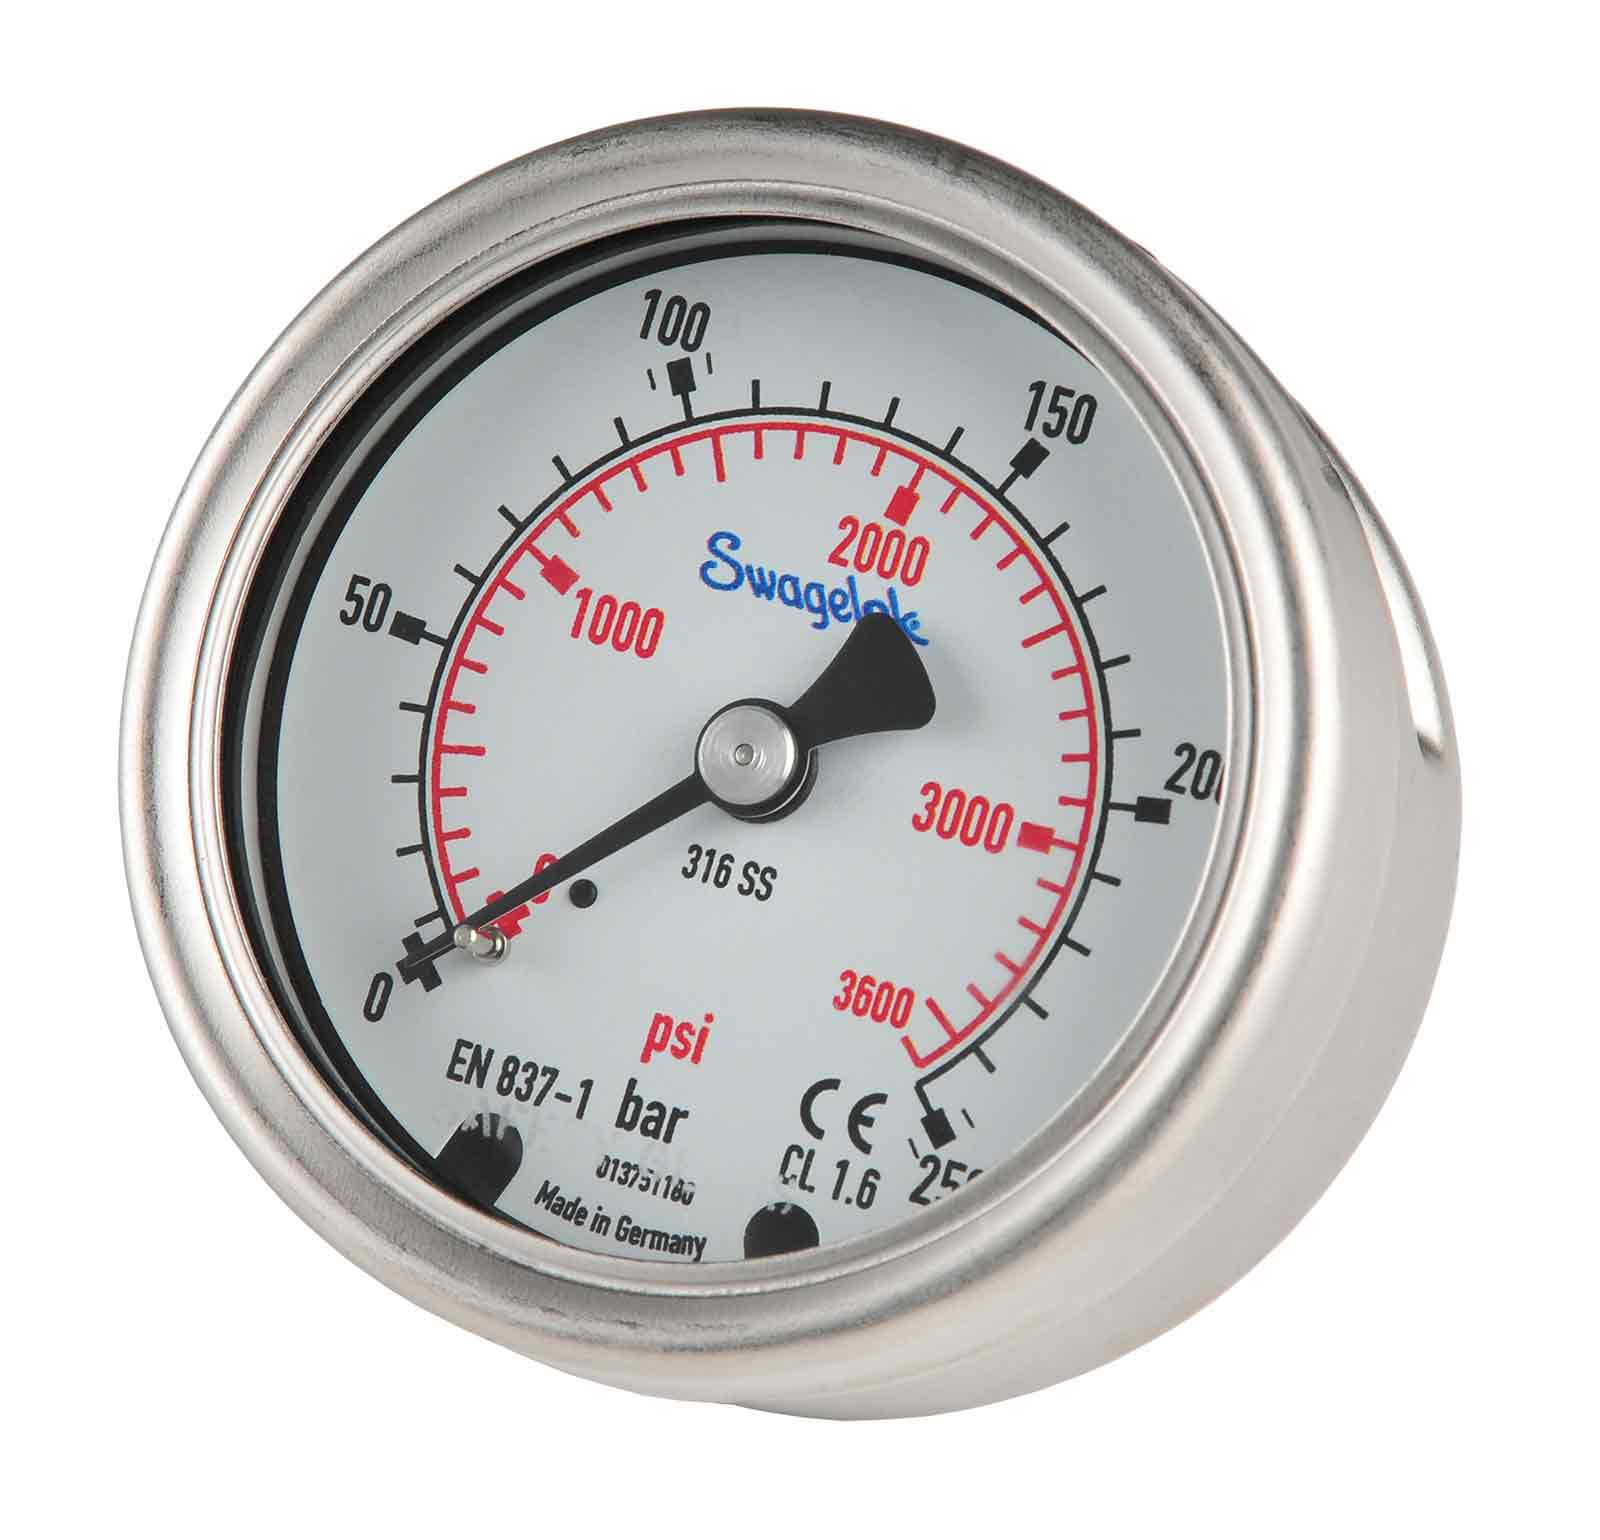 Shaw Moisture Meters dewpoint meter accessories pressure gauge,indicate local system pressure